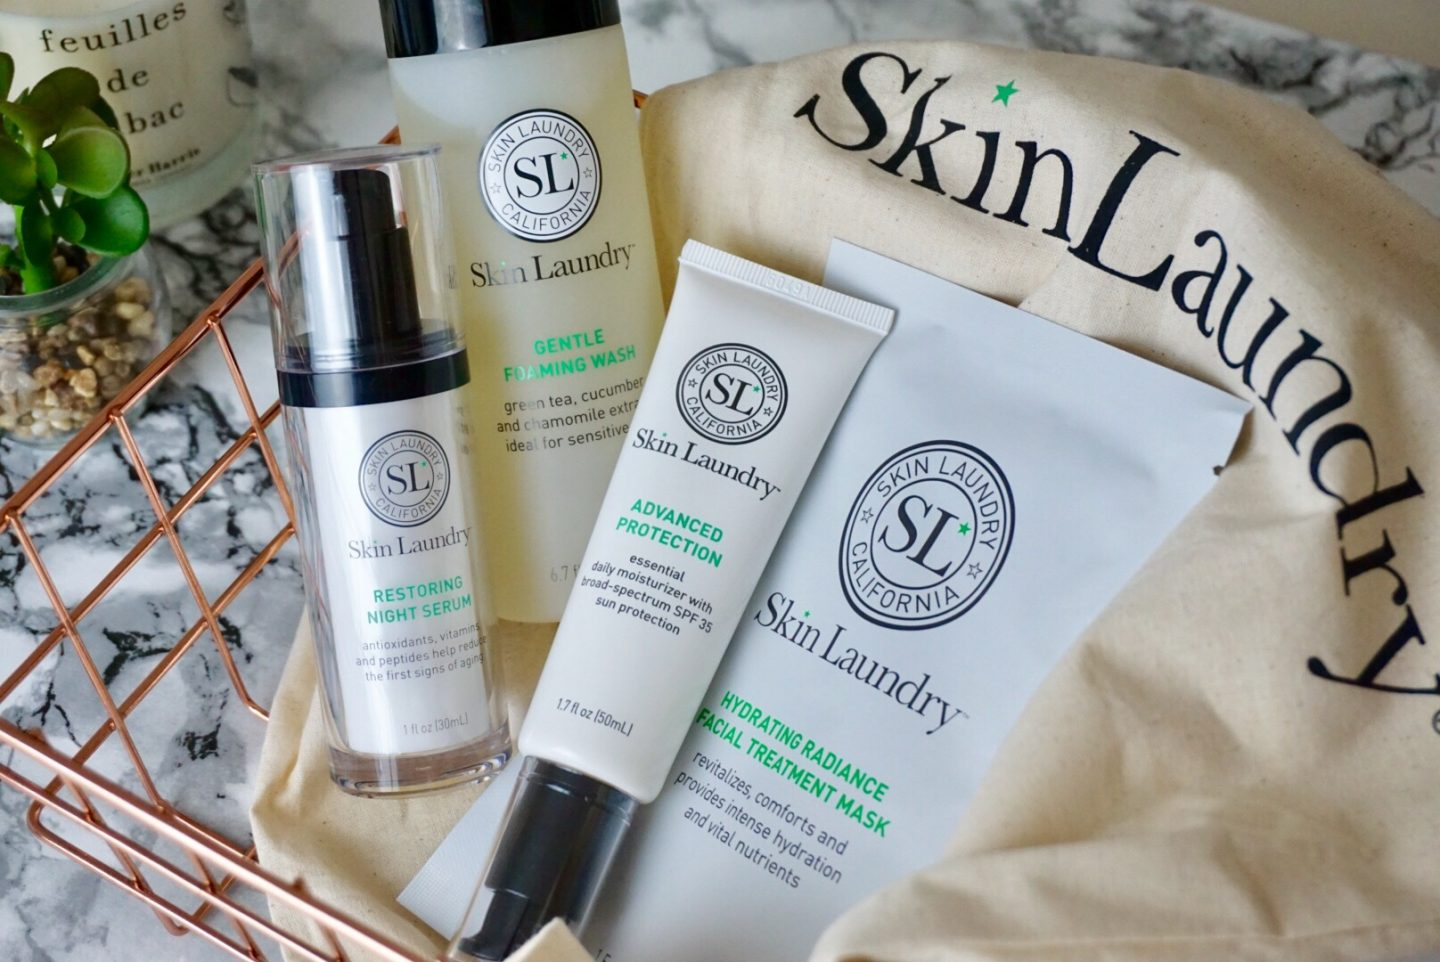 Skin Laundry Launches Wash & Wear Skincare Nationwide*